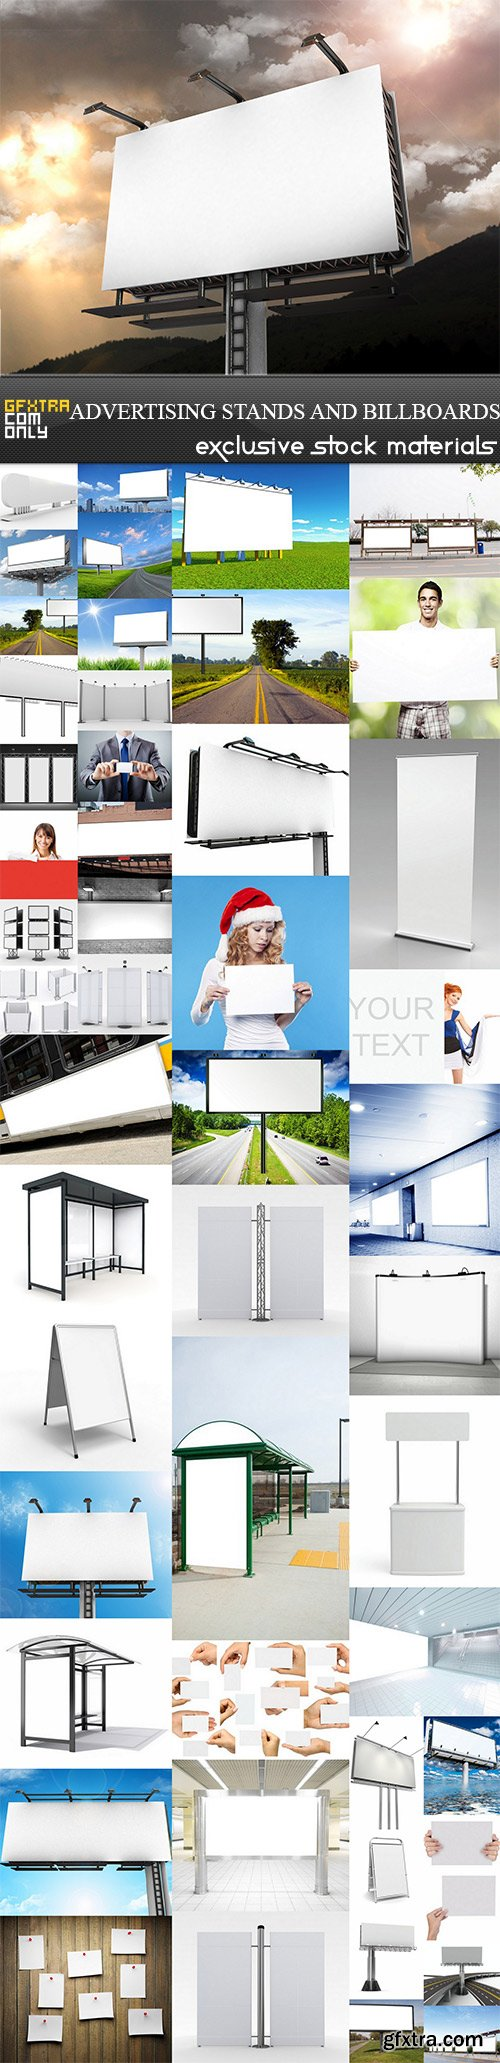 Advertising Stands and Billboards - 50 UHQ JPEG